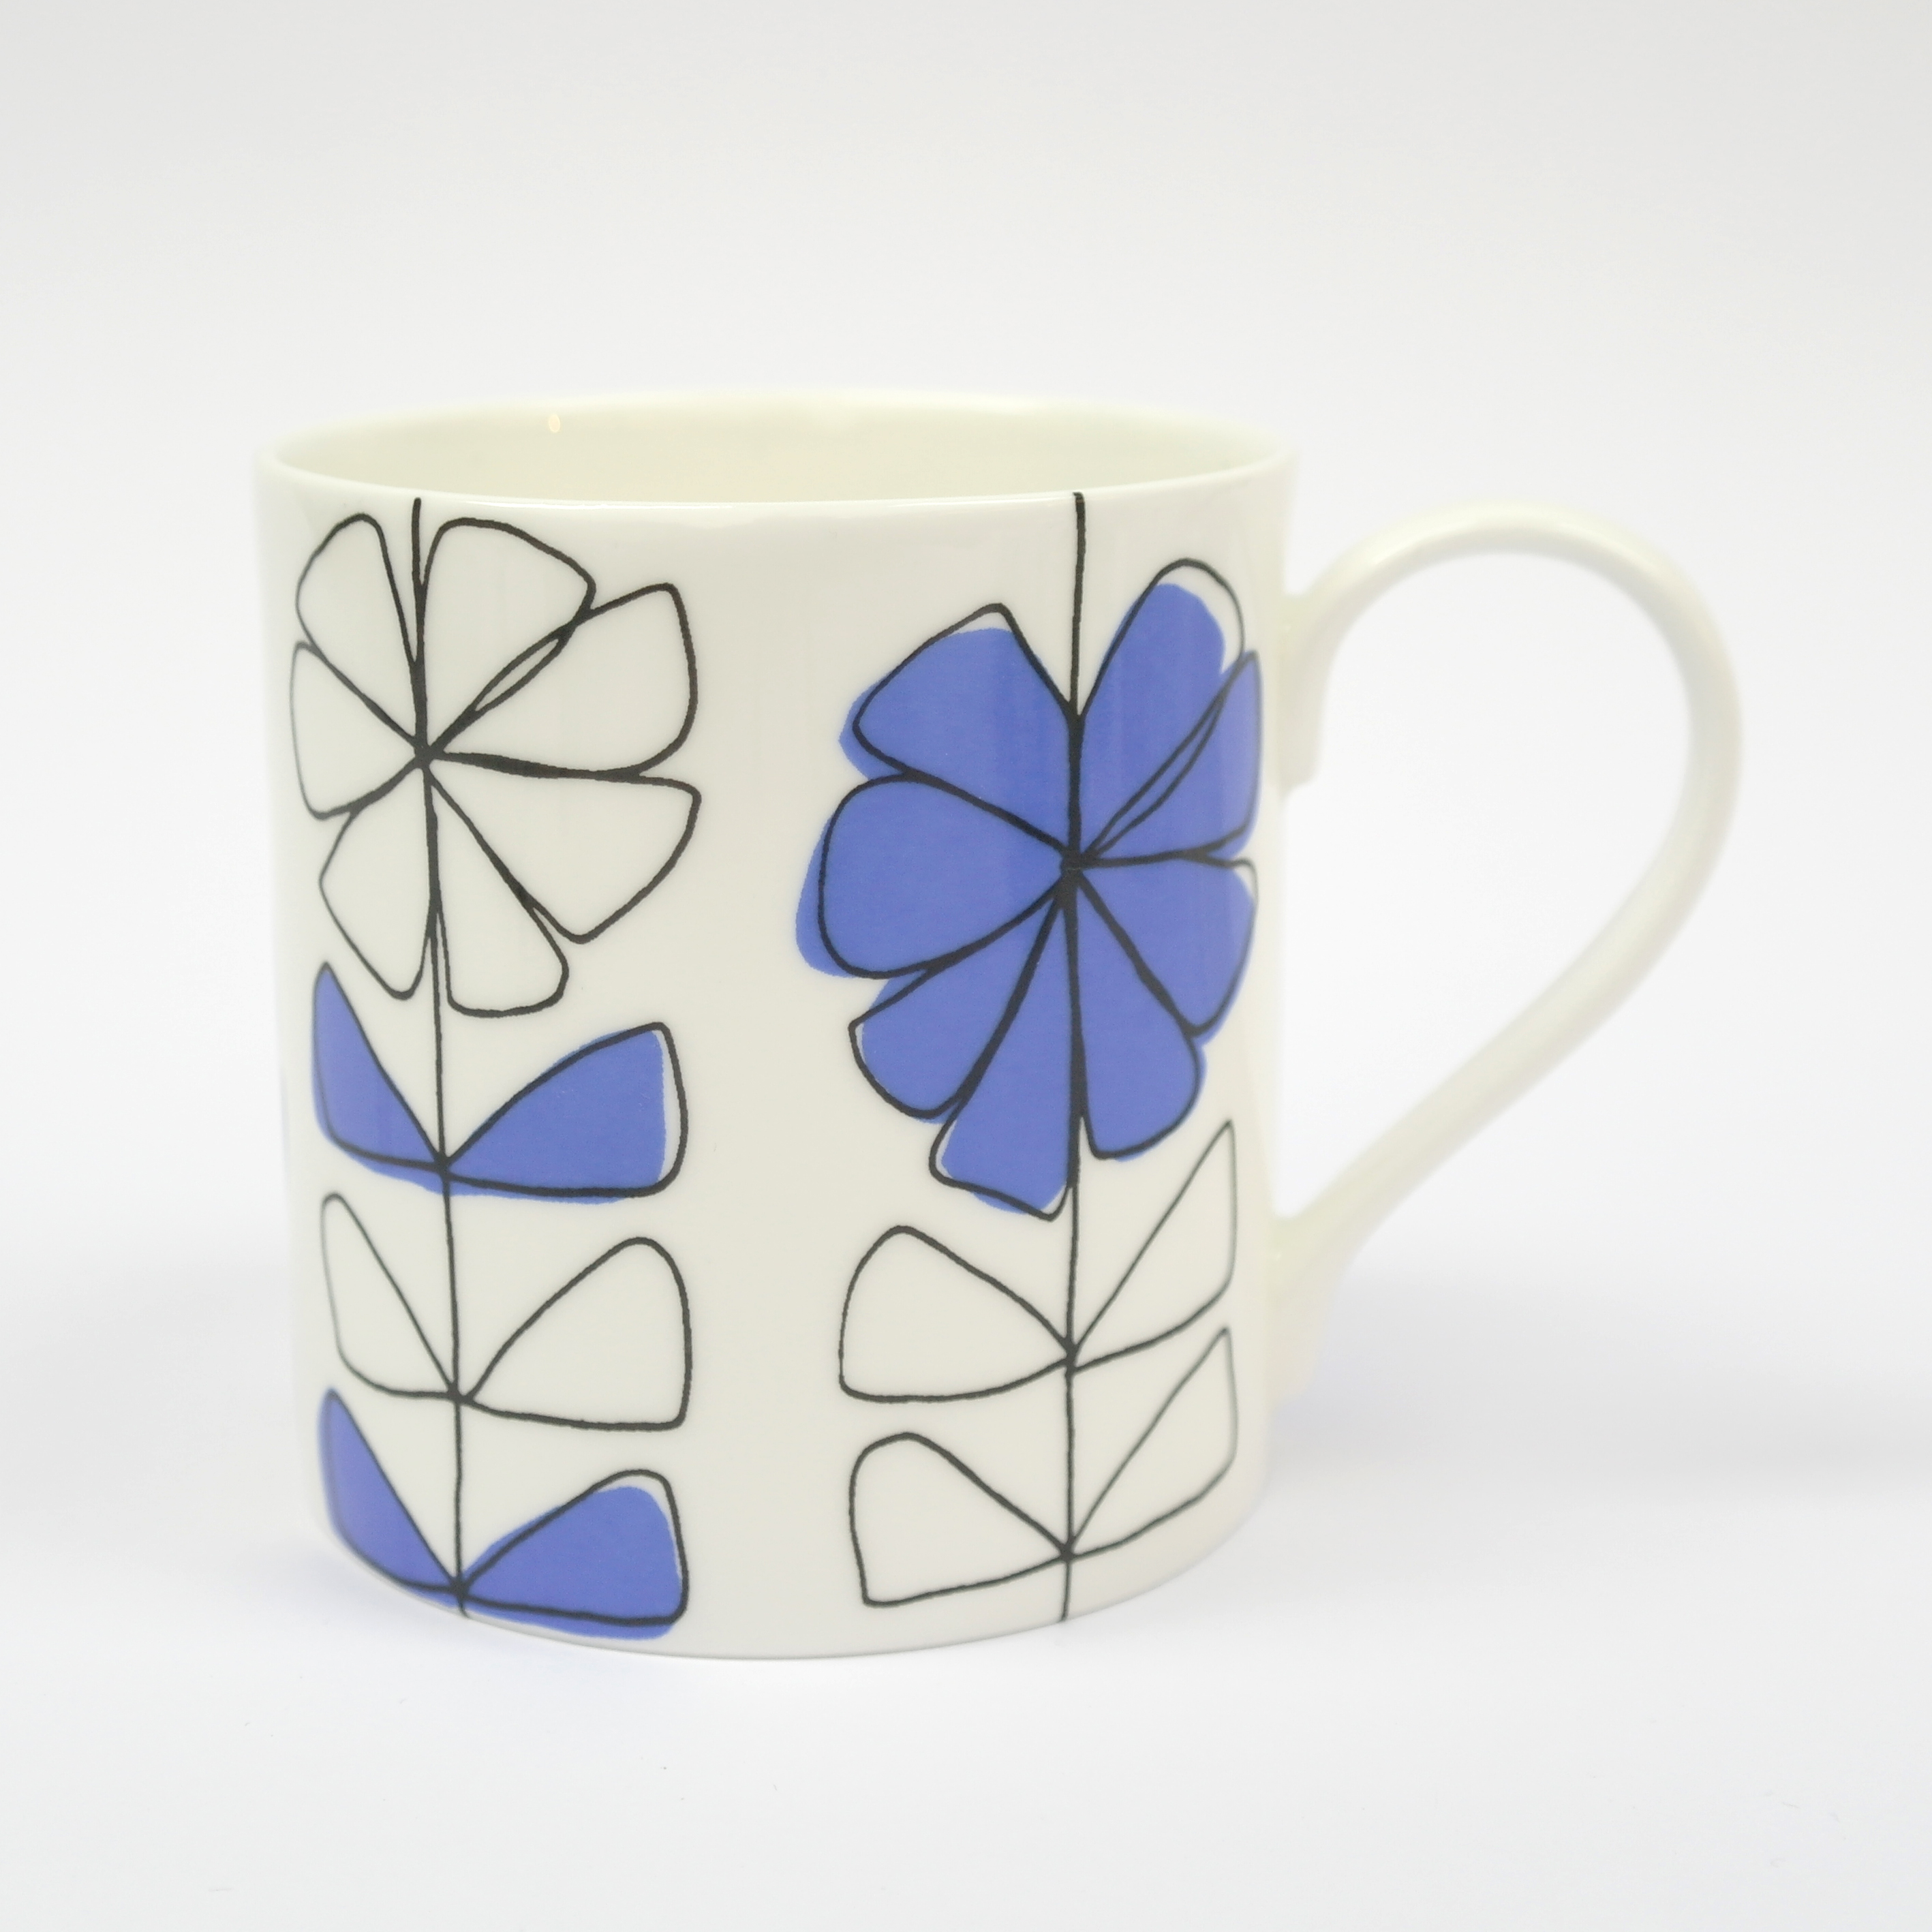 Floral Linear Open Mug Boxed (English Fine Bone China) Available in 6 Colourways